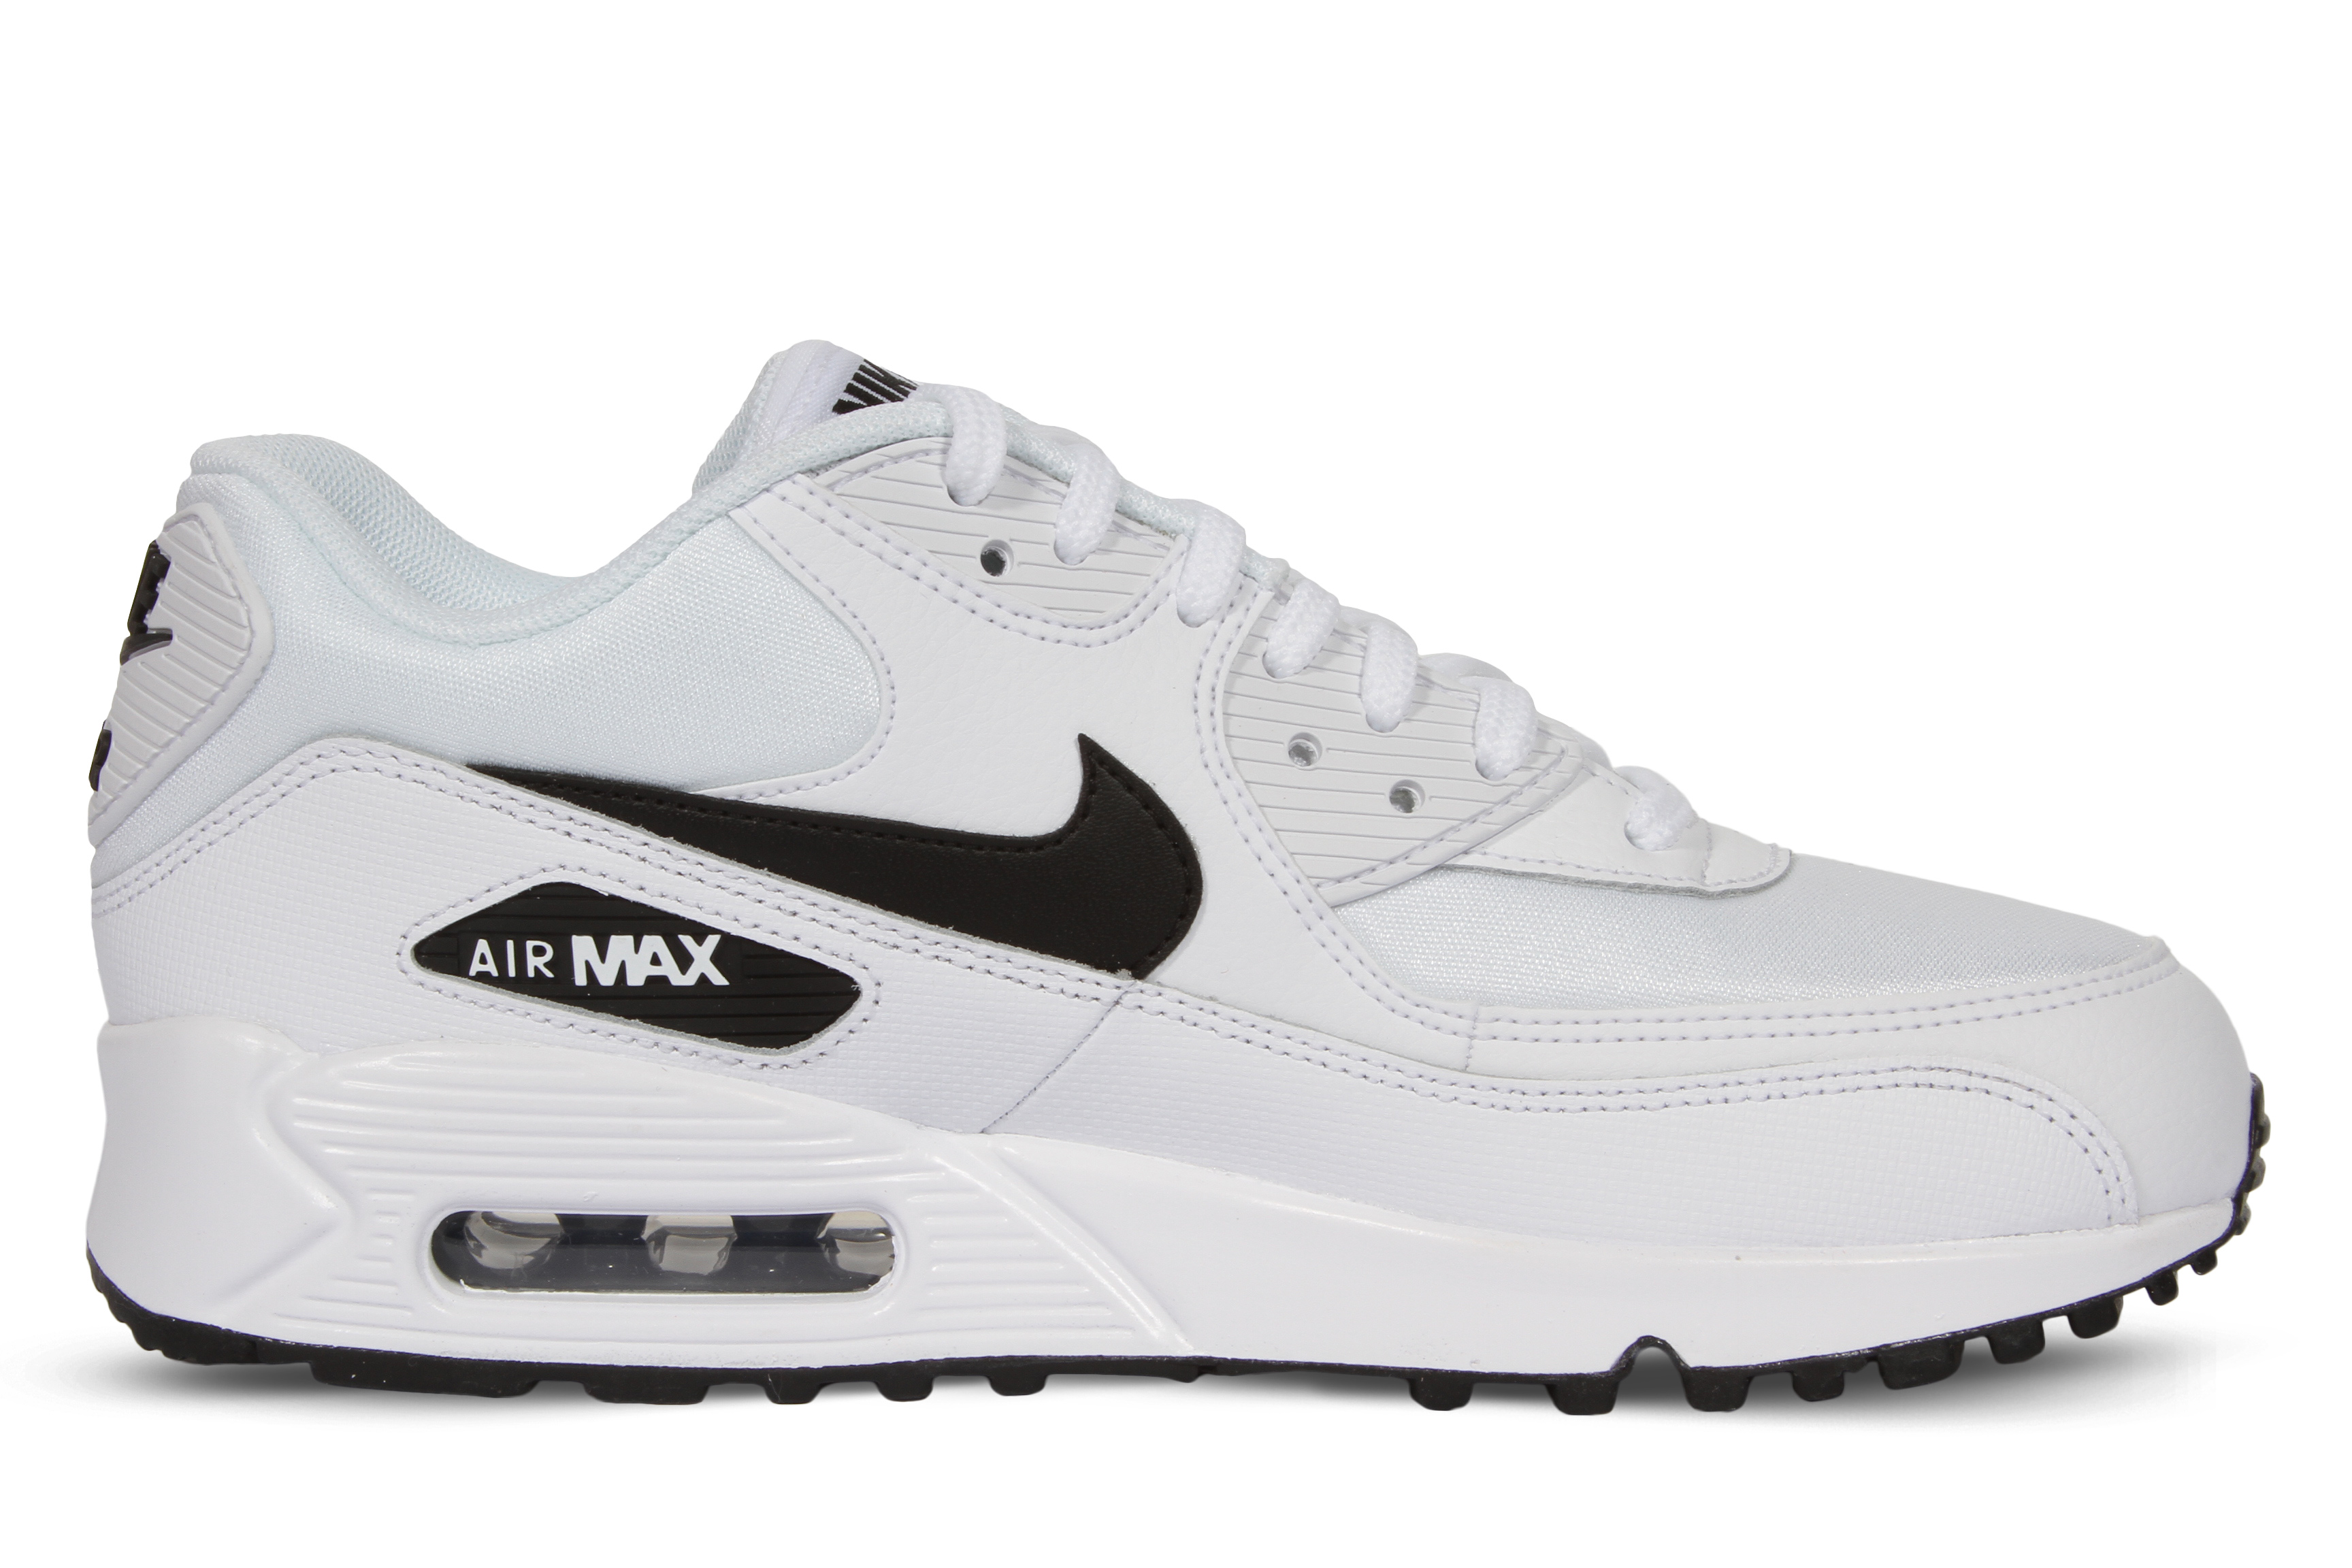 hot sale online 1a287 237ca ... Nike Air Max 90 Women s Women s Women s Running Shoes 325213-131 ffa9df  ...